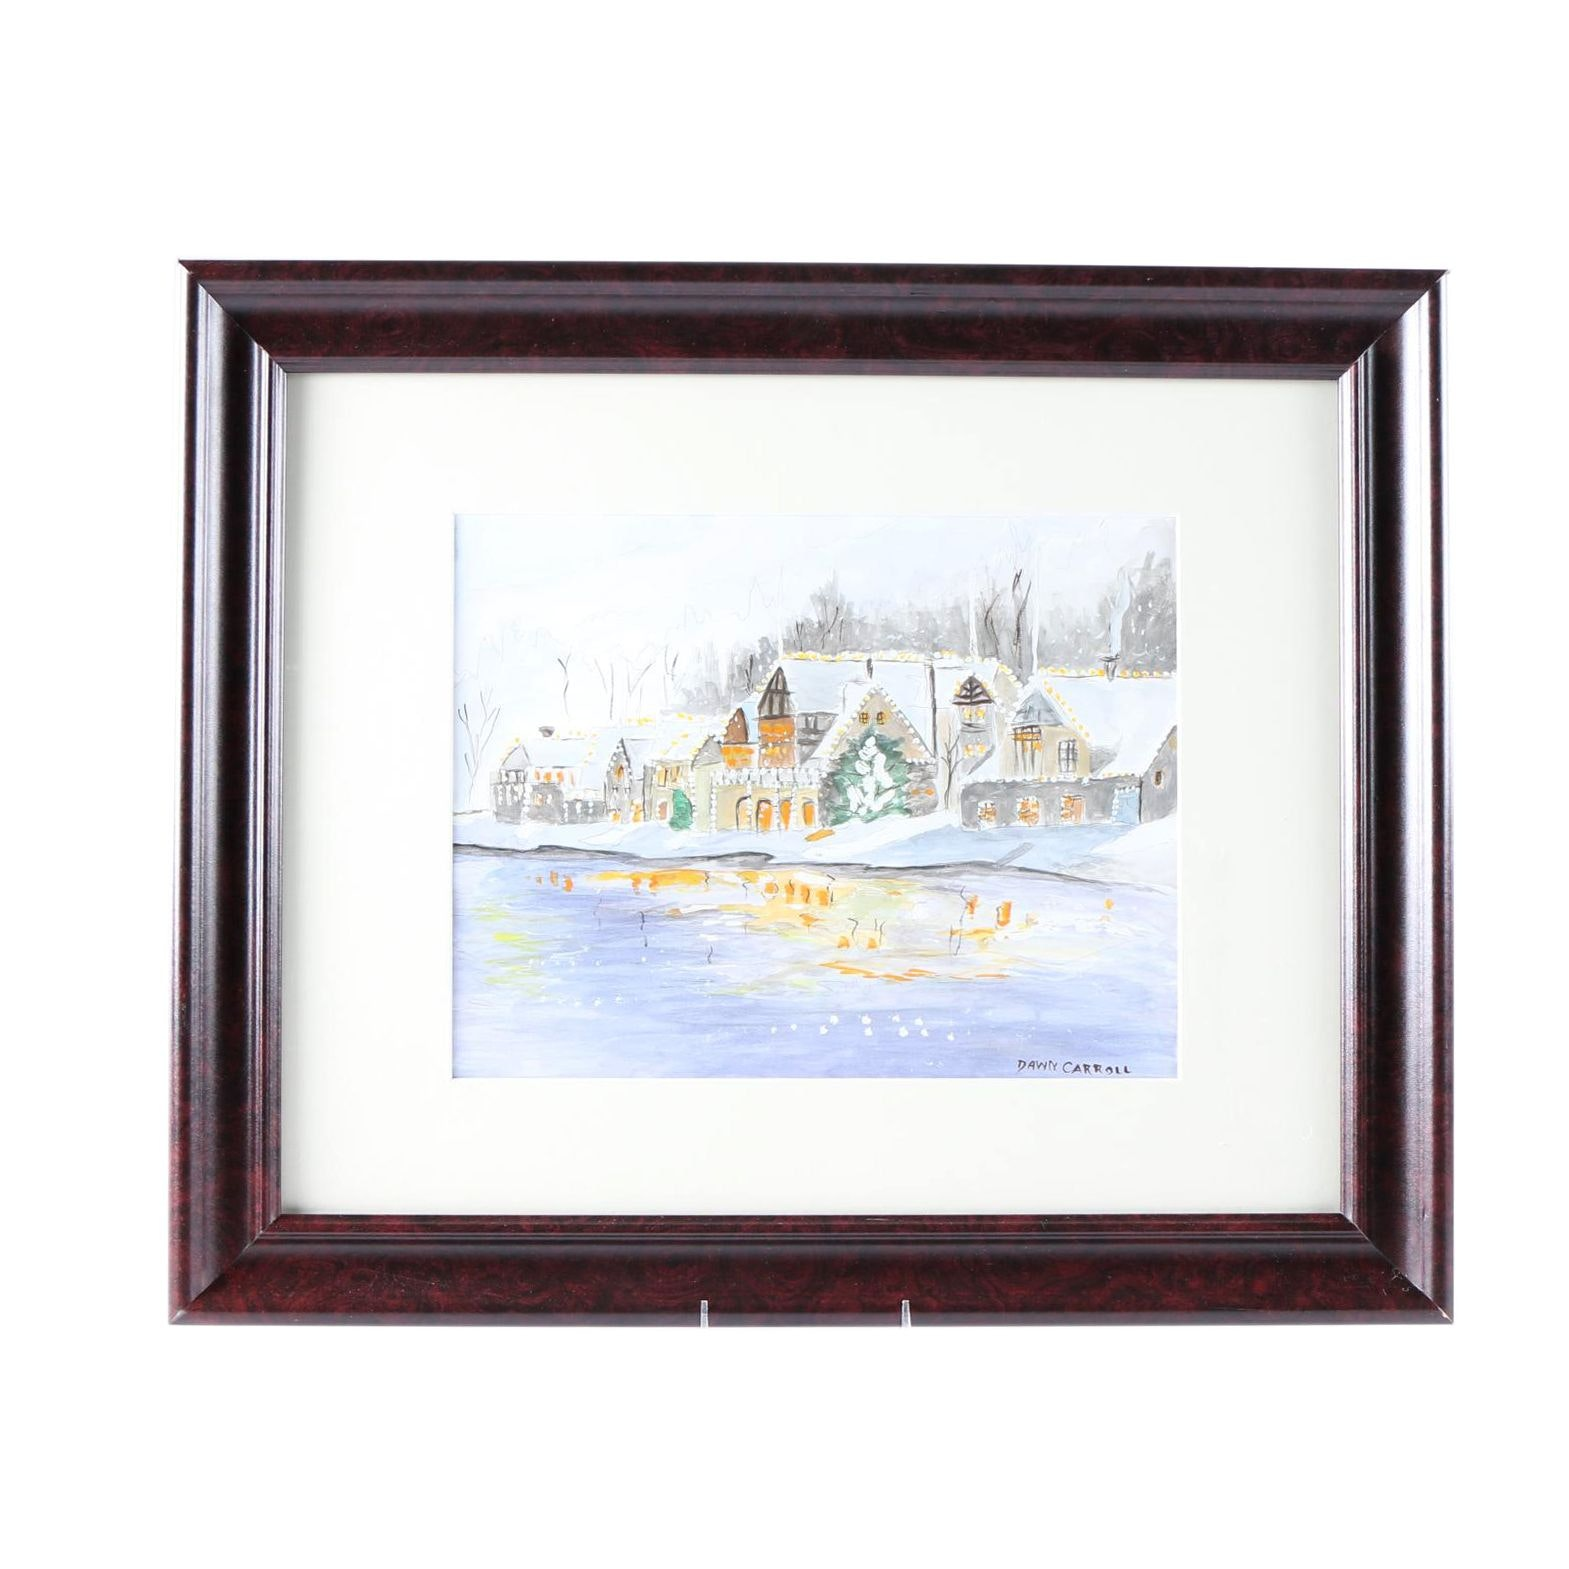 Dawn Carroll Mixed Media Painting Depicting a Winter Village